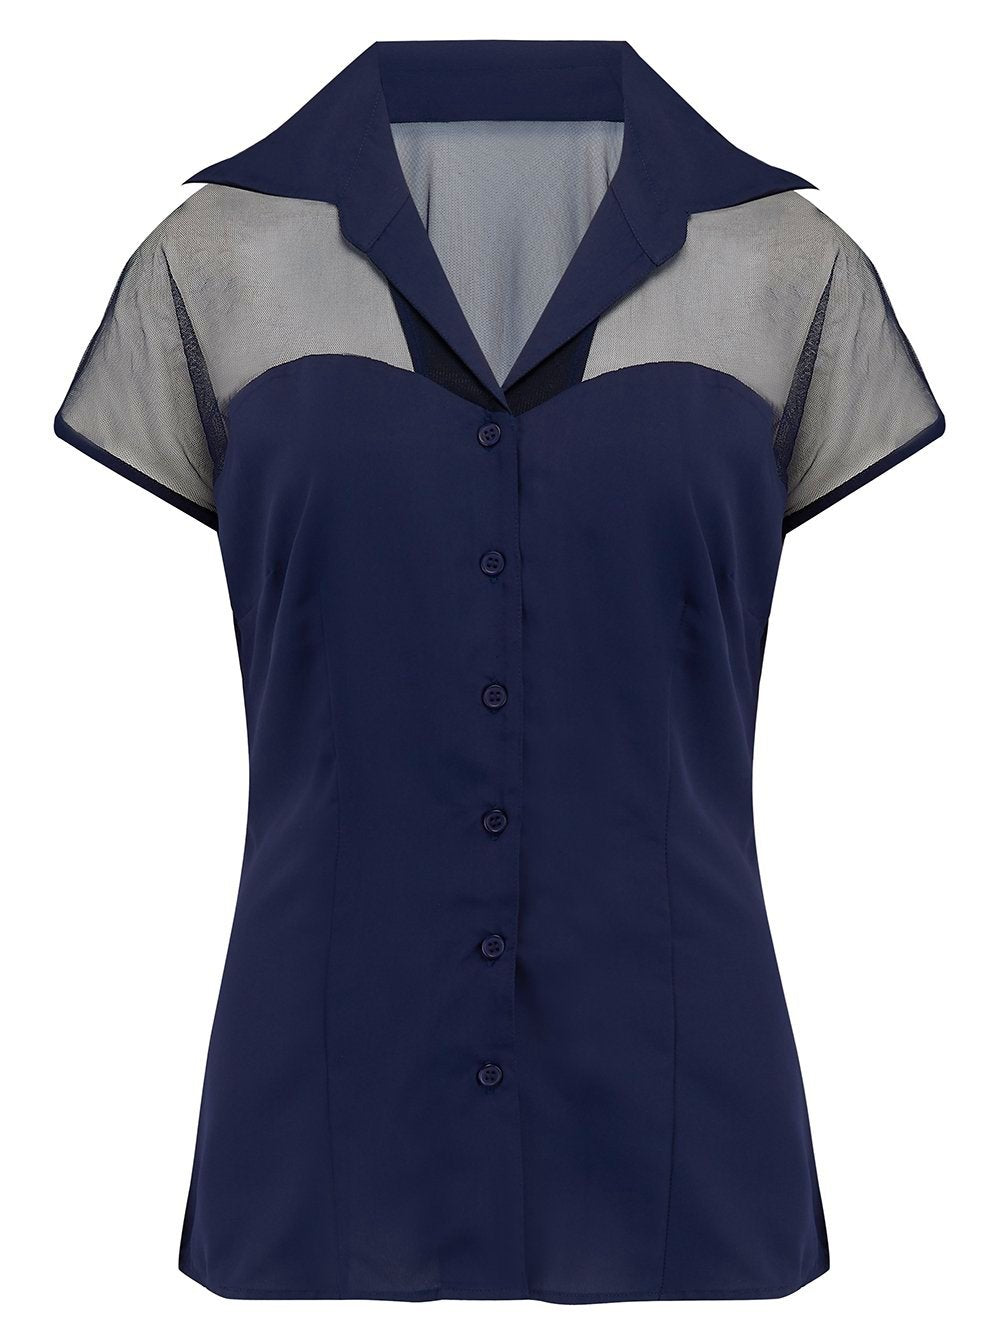 "Rock n Romance **Sample Sale** ""Dalilah"" Blouse in Navy Blue with Net Upper, Classic Vintage 1950s Inspired Style - RocknRomance Clothing"